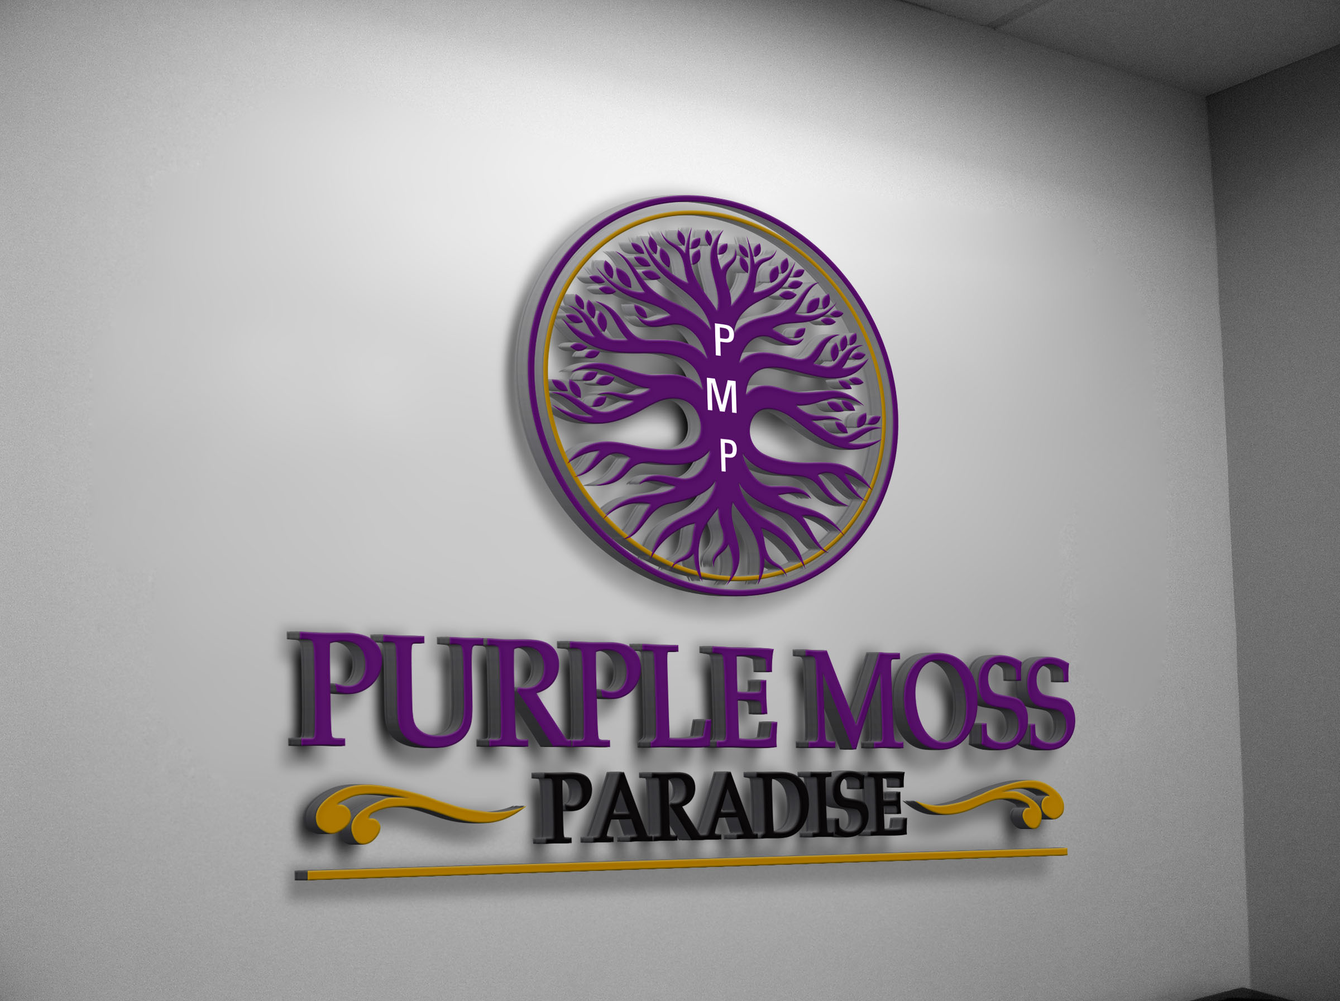 PURPLE MOSS PARADISE INC